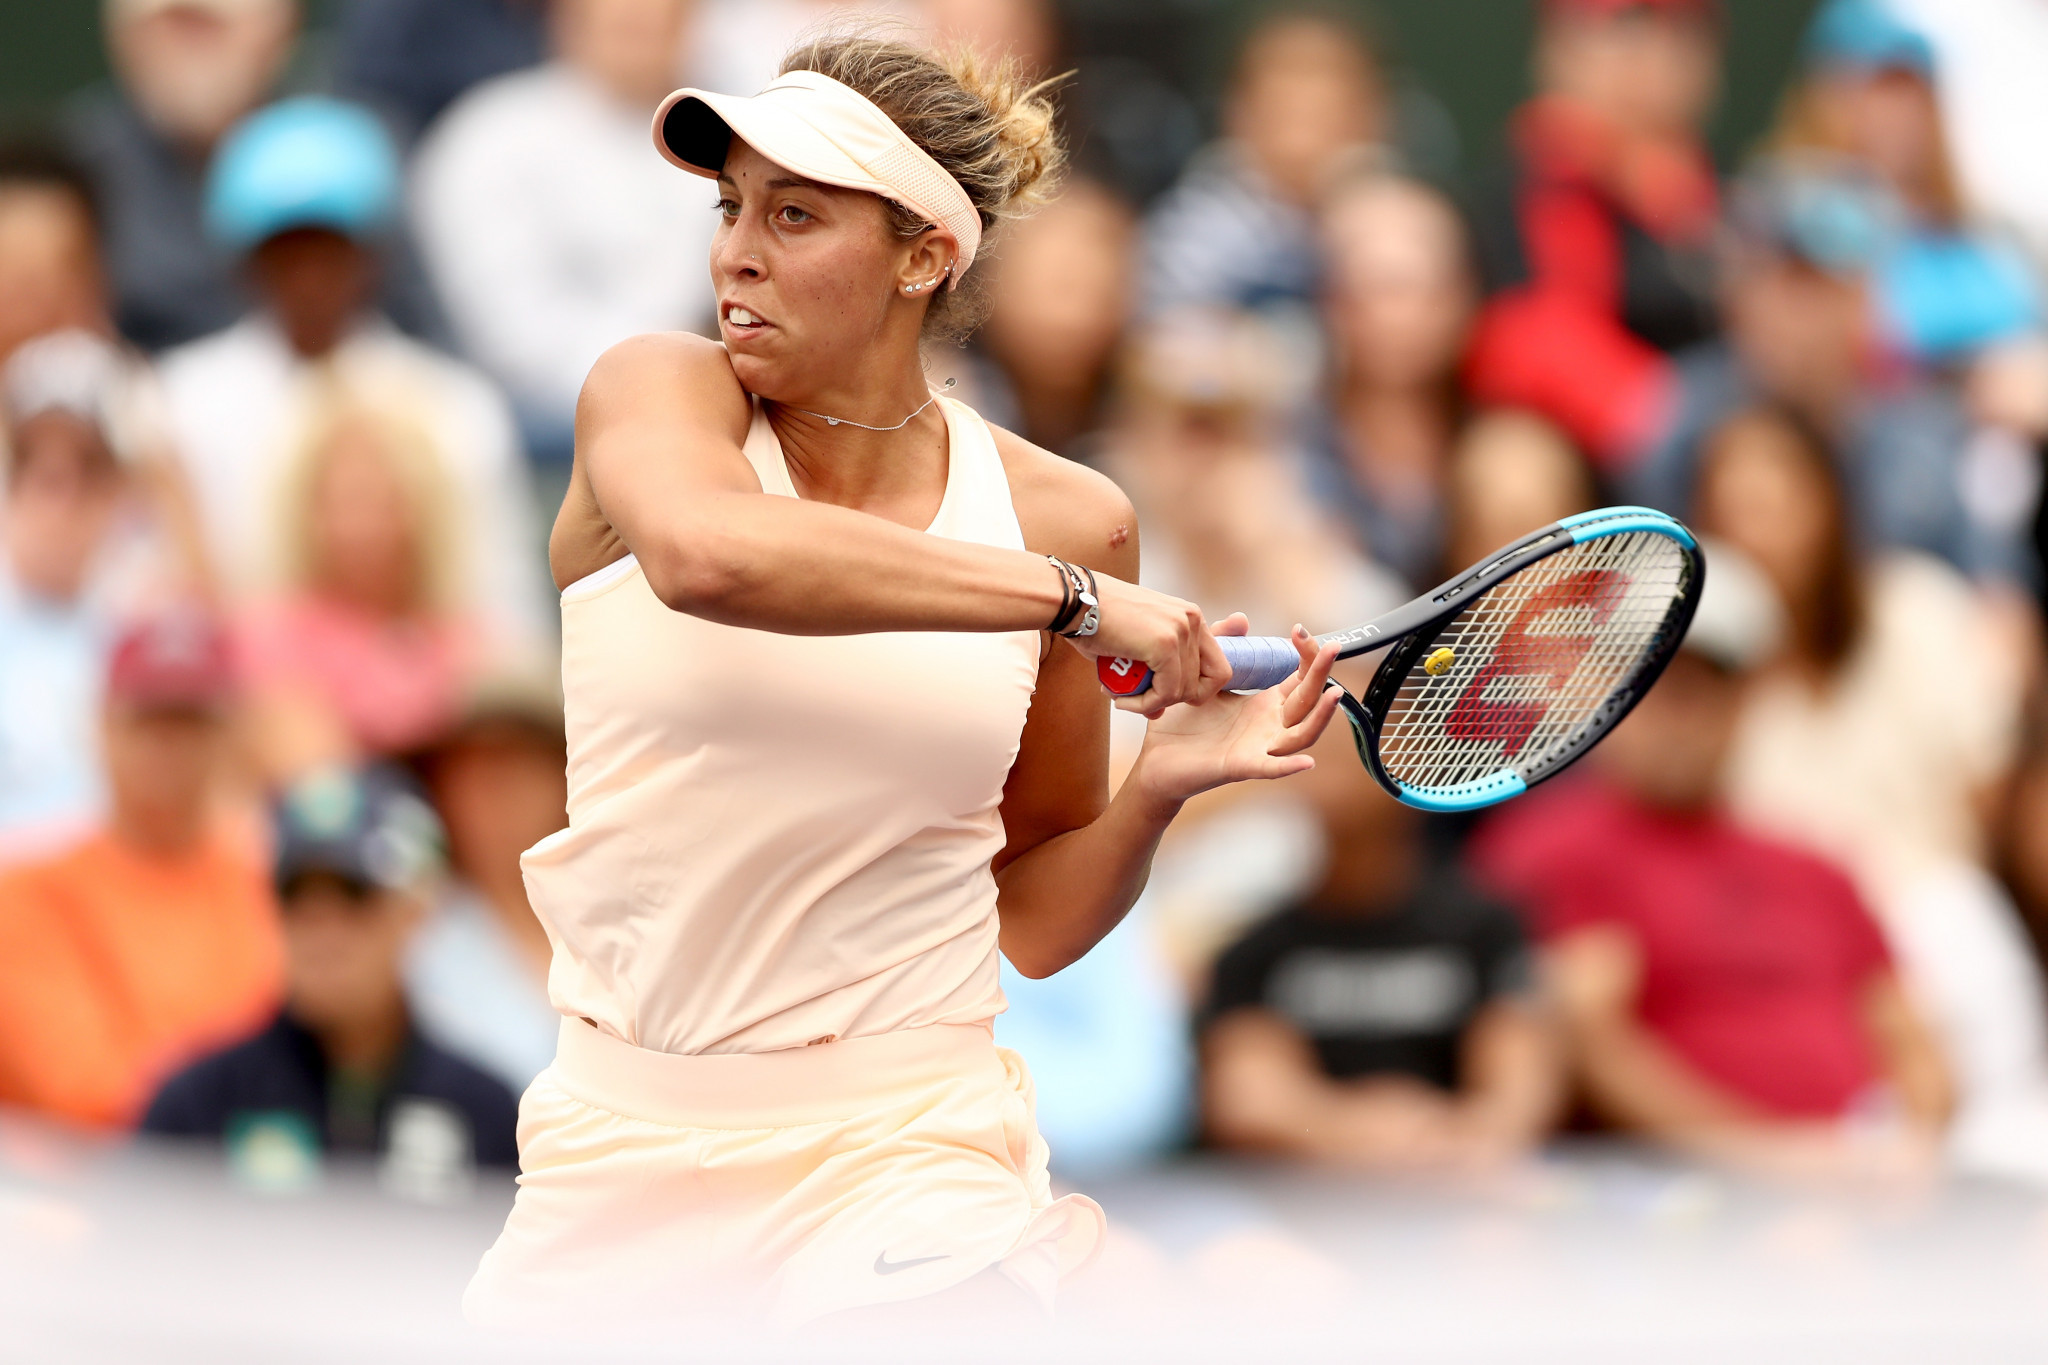 Madison Keys recorded a comfortable victory in the women's competition